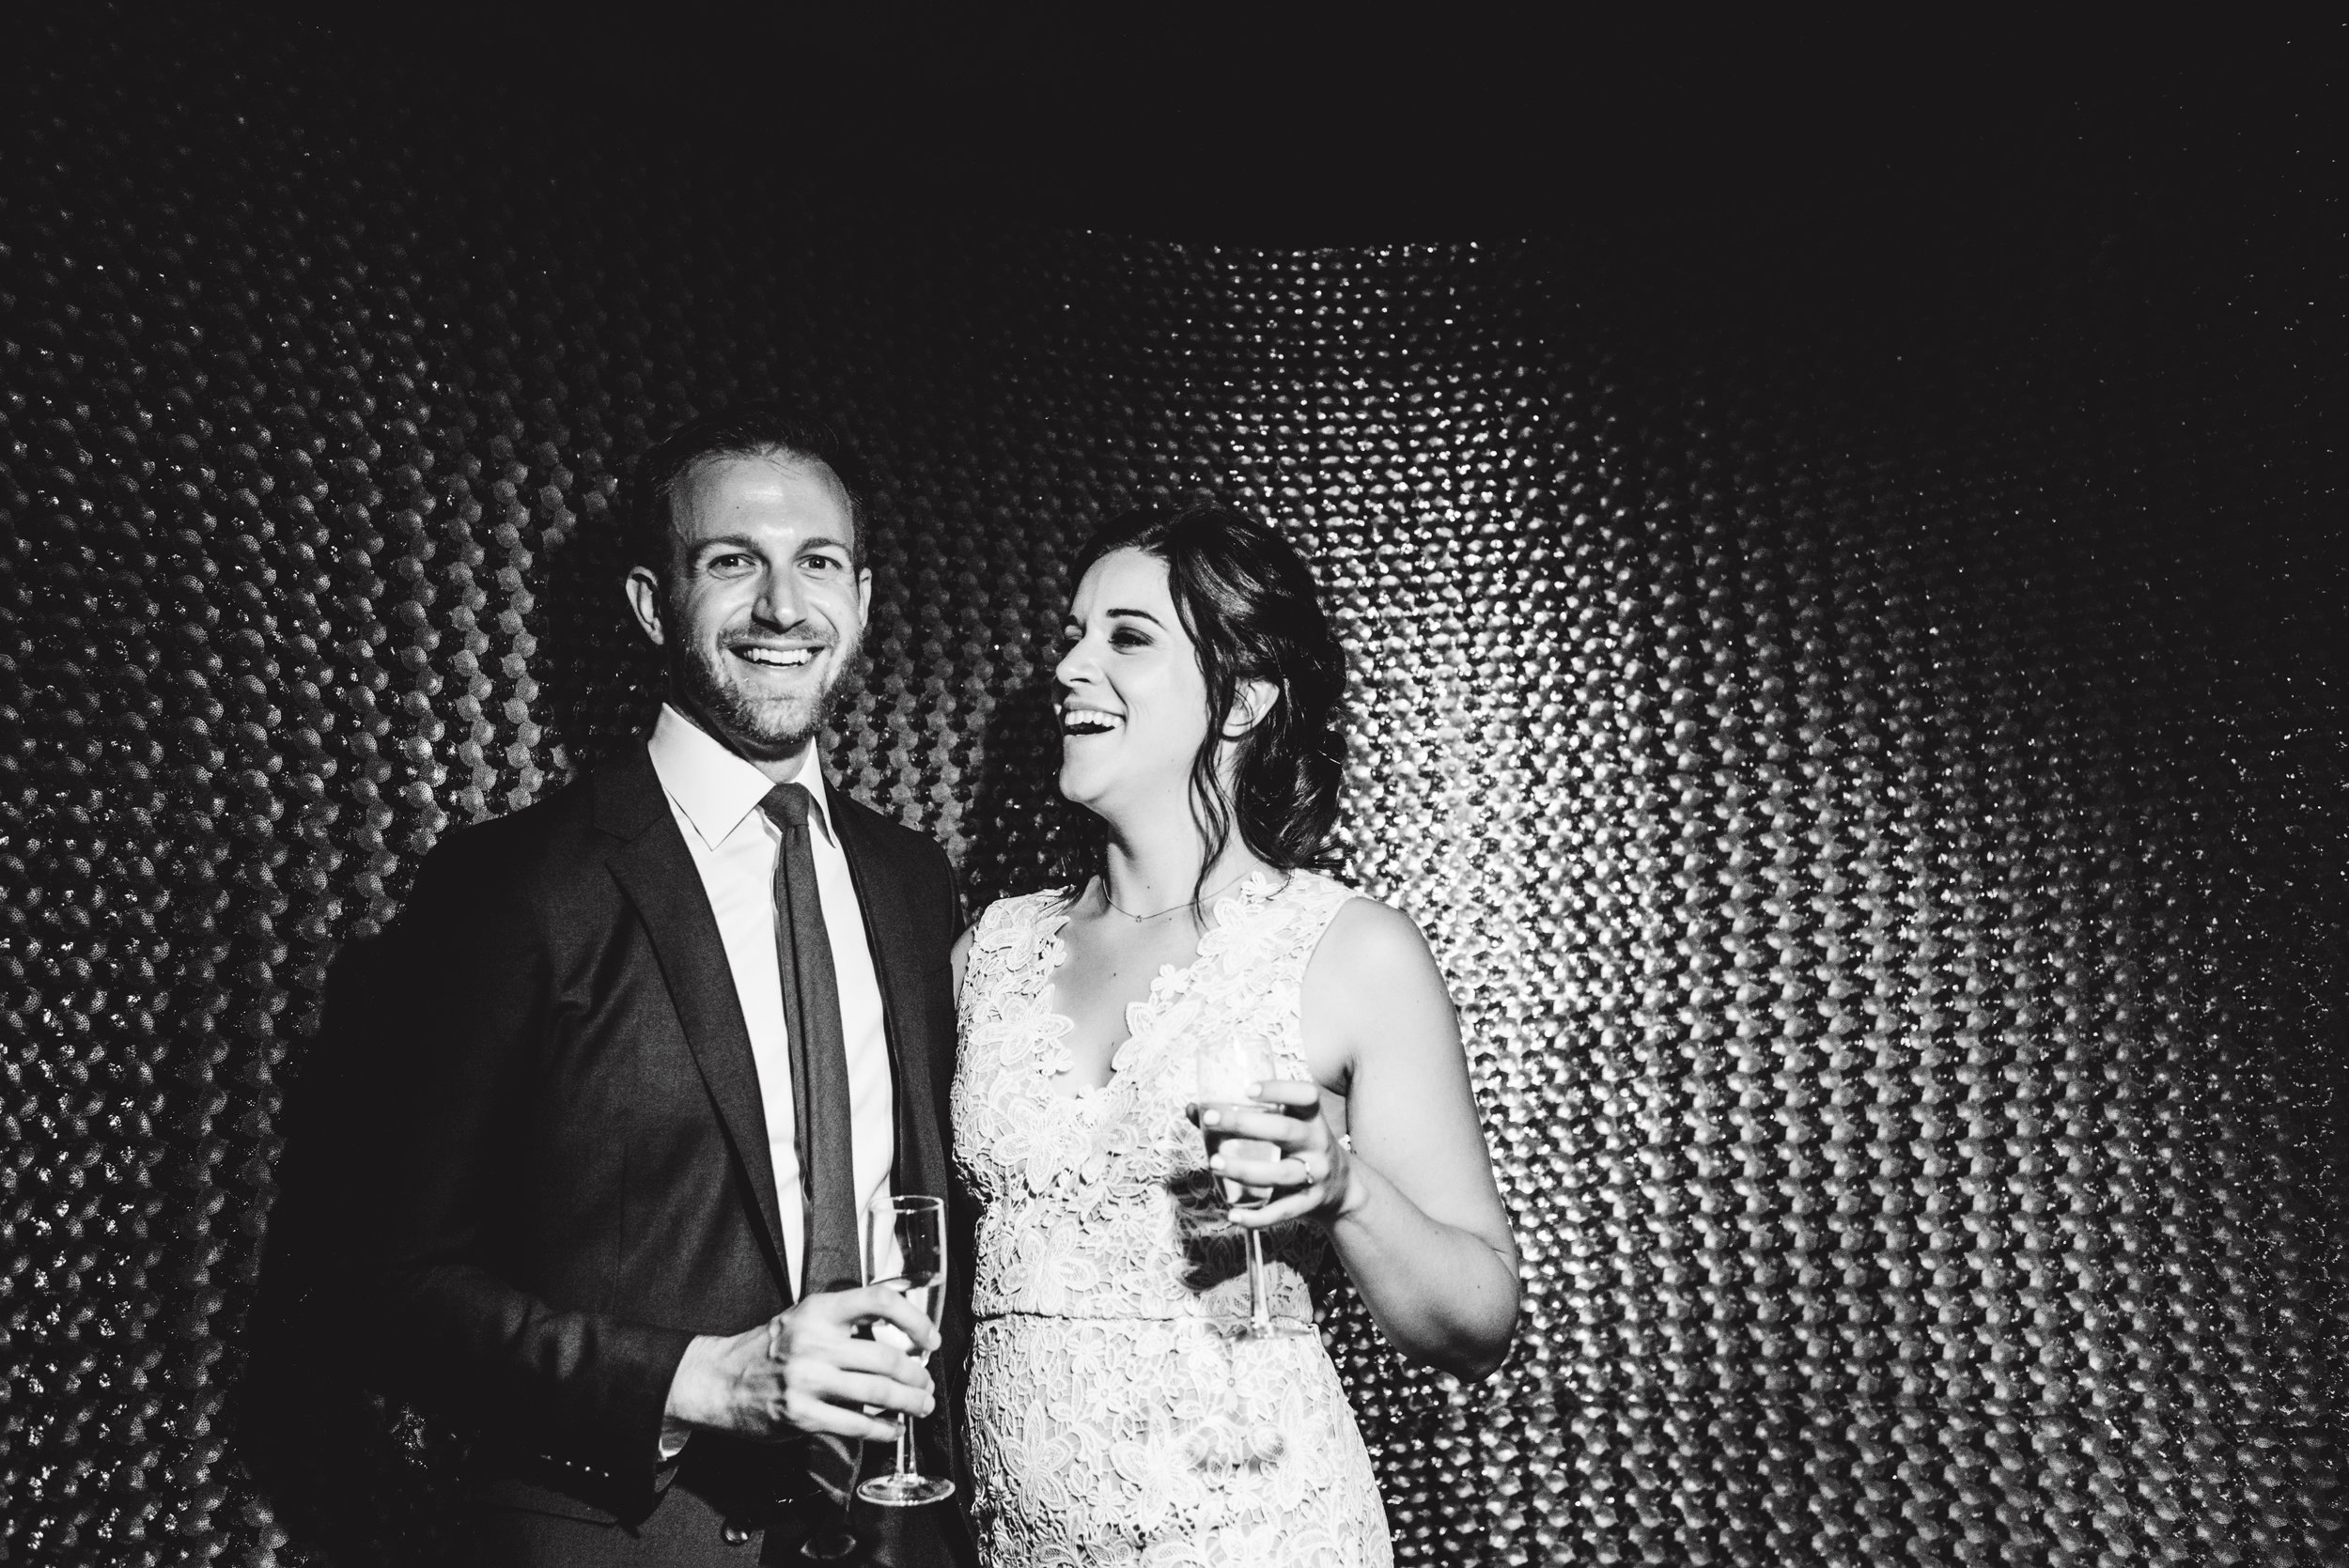 AMANDA & MATT - LE FANFARE NYC - INTIMATE WEDDING PHOTOGRAPHER by CHI-CHI ARI-701.jpg